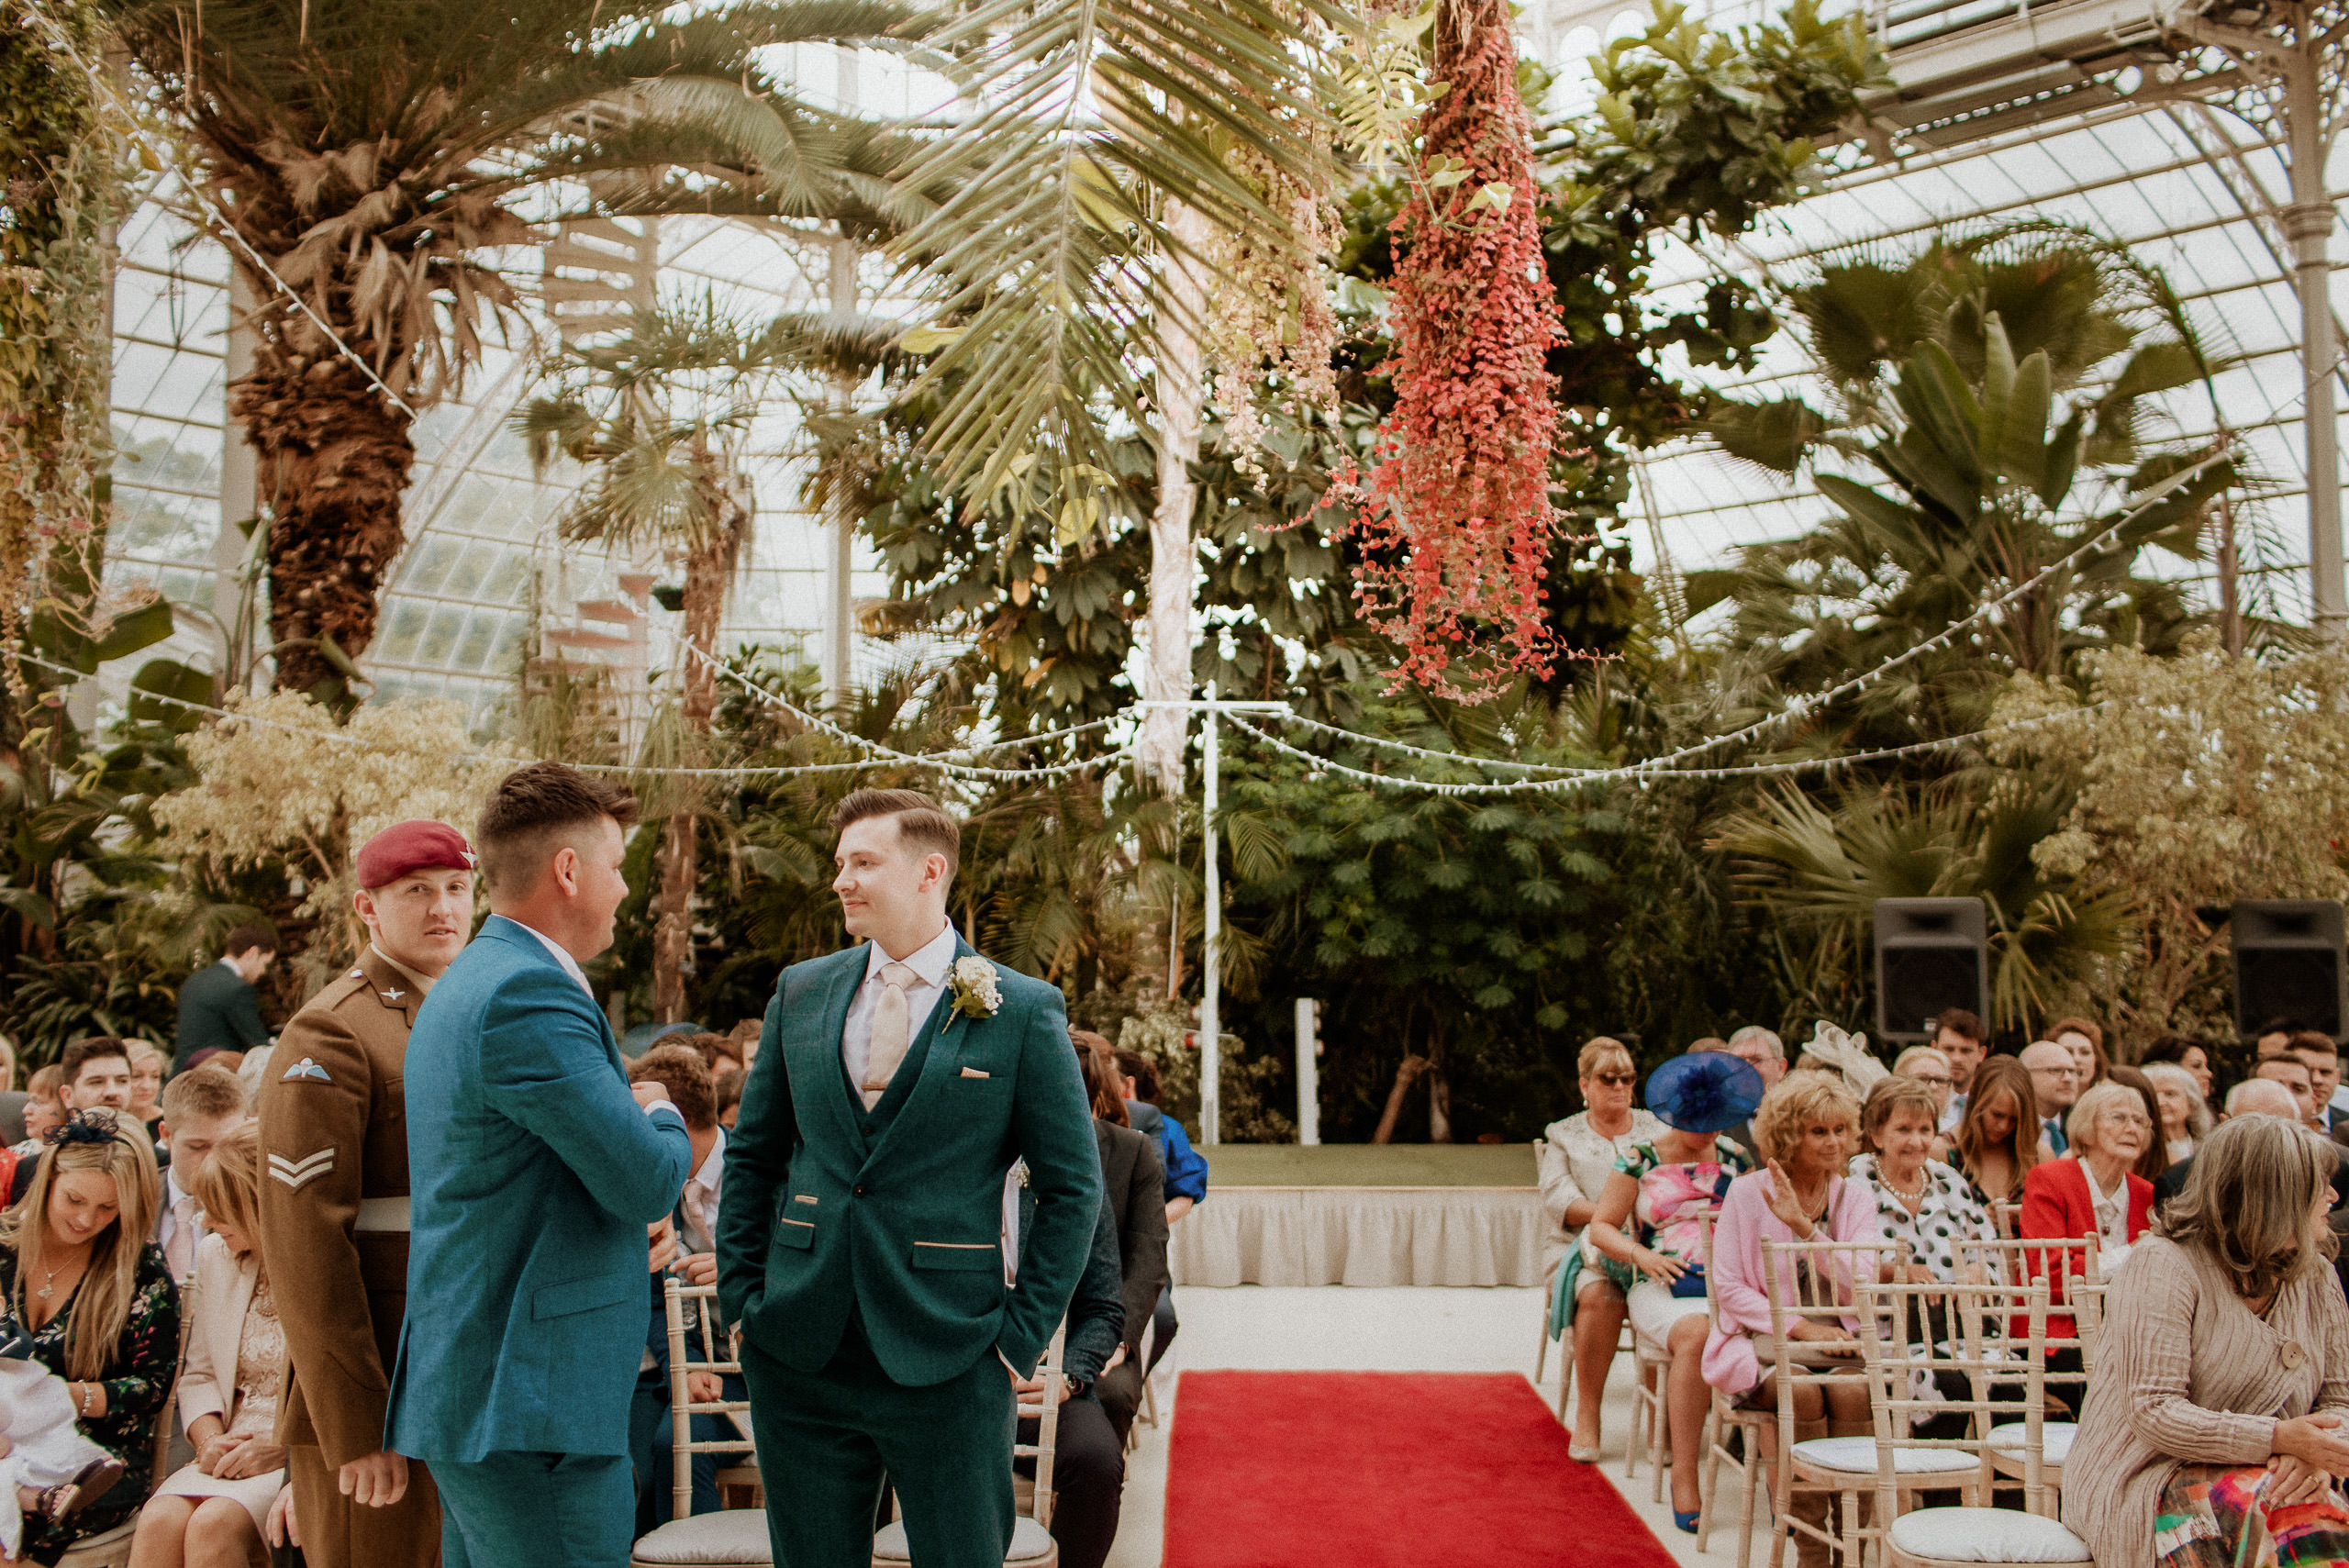 inside the Sefton palm house as groom waits to get married